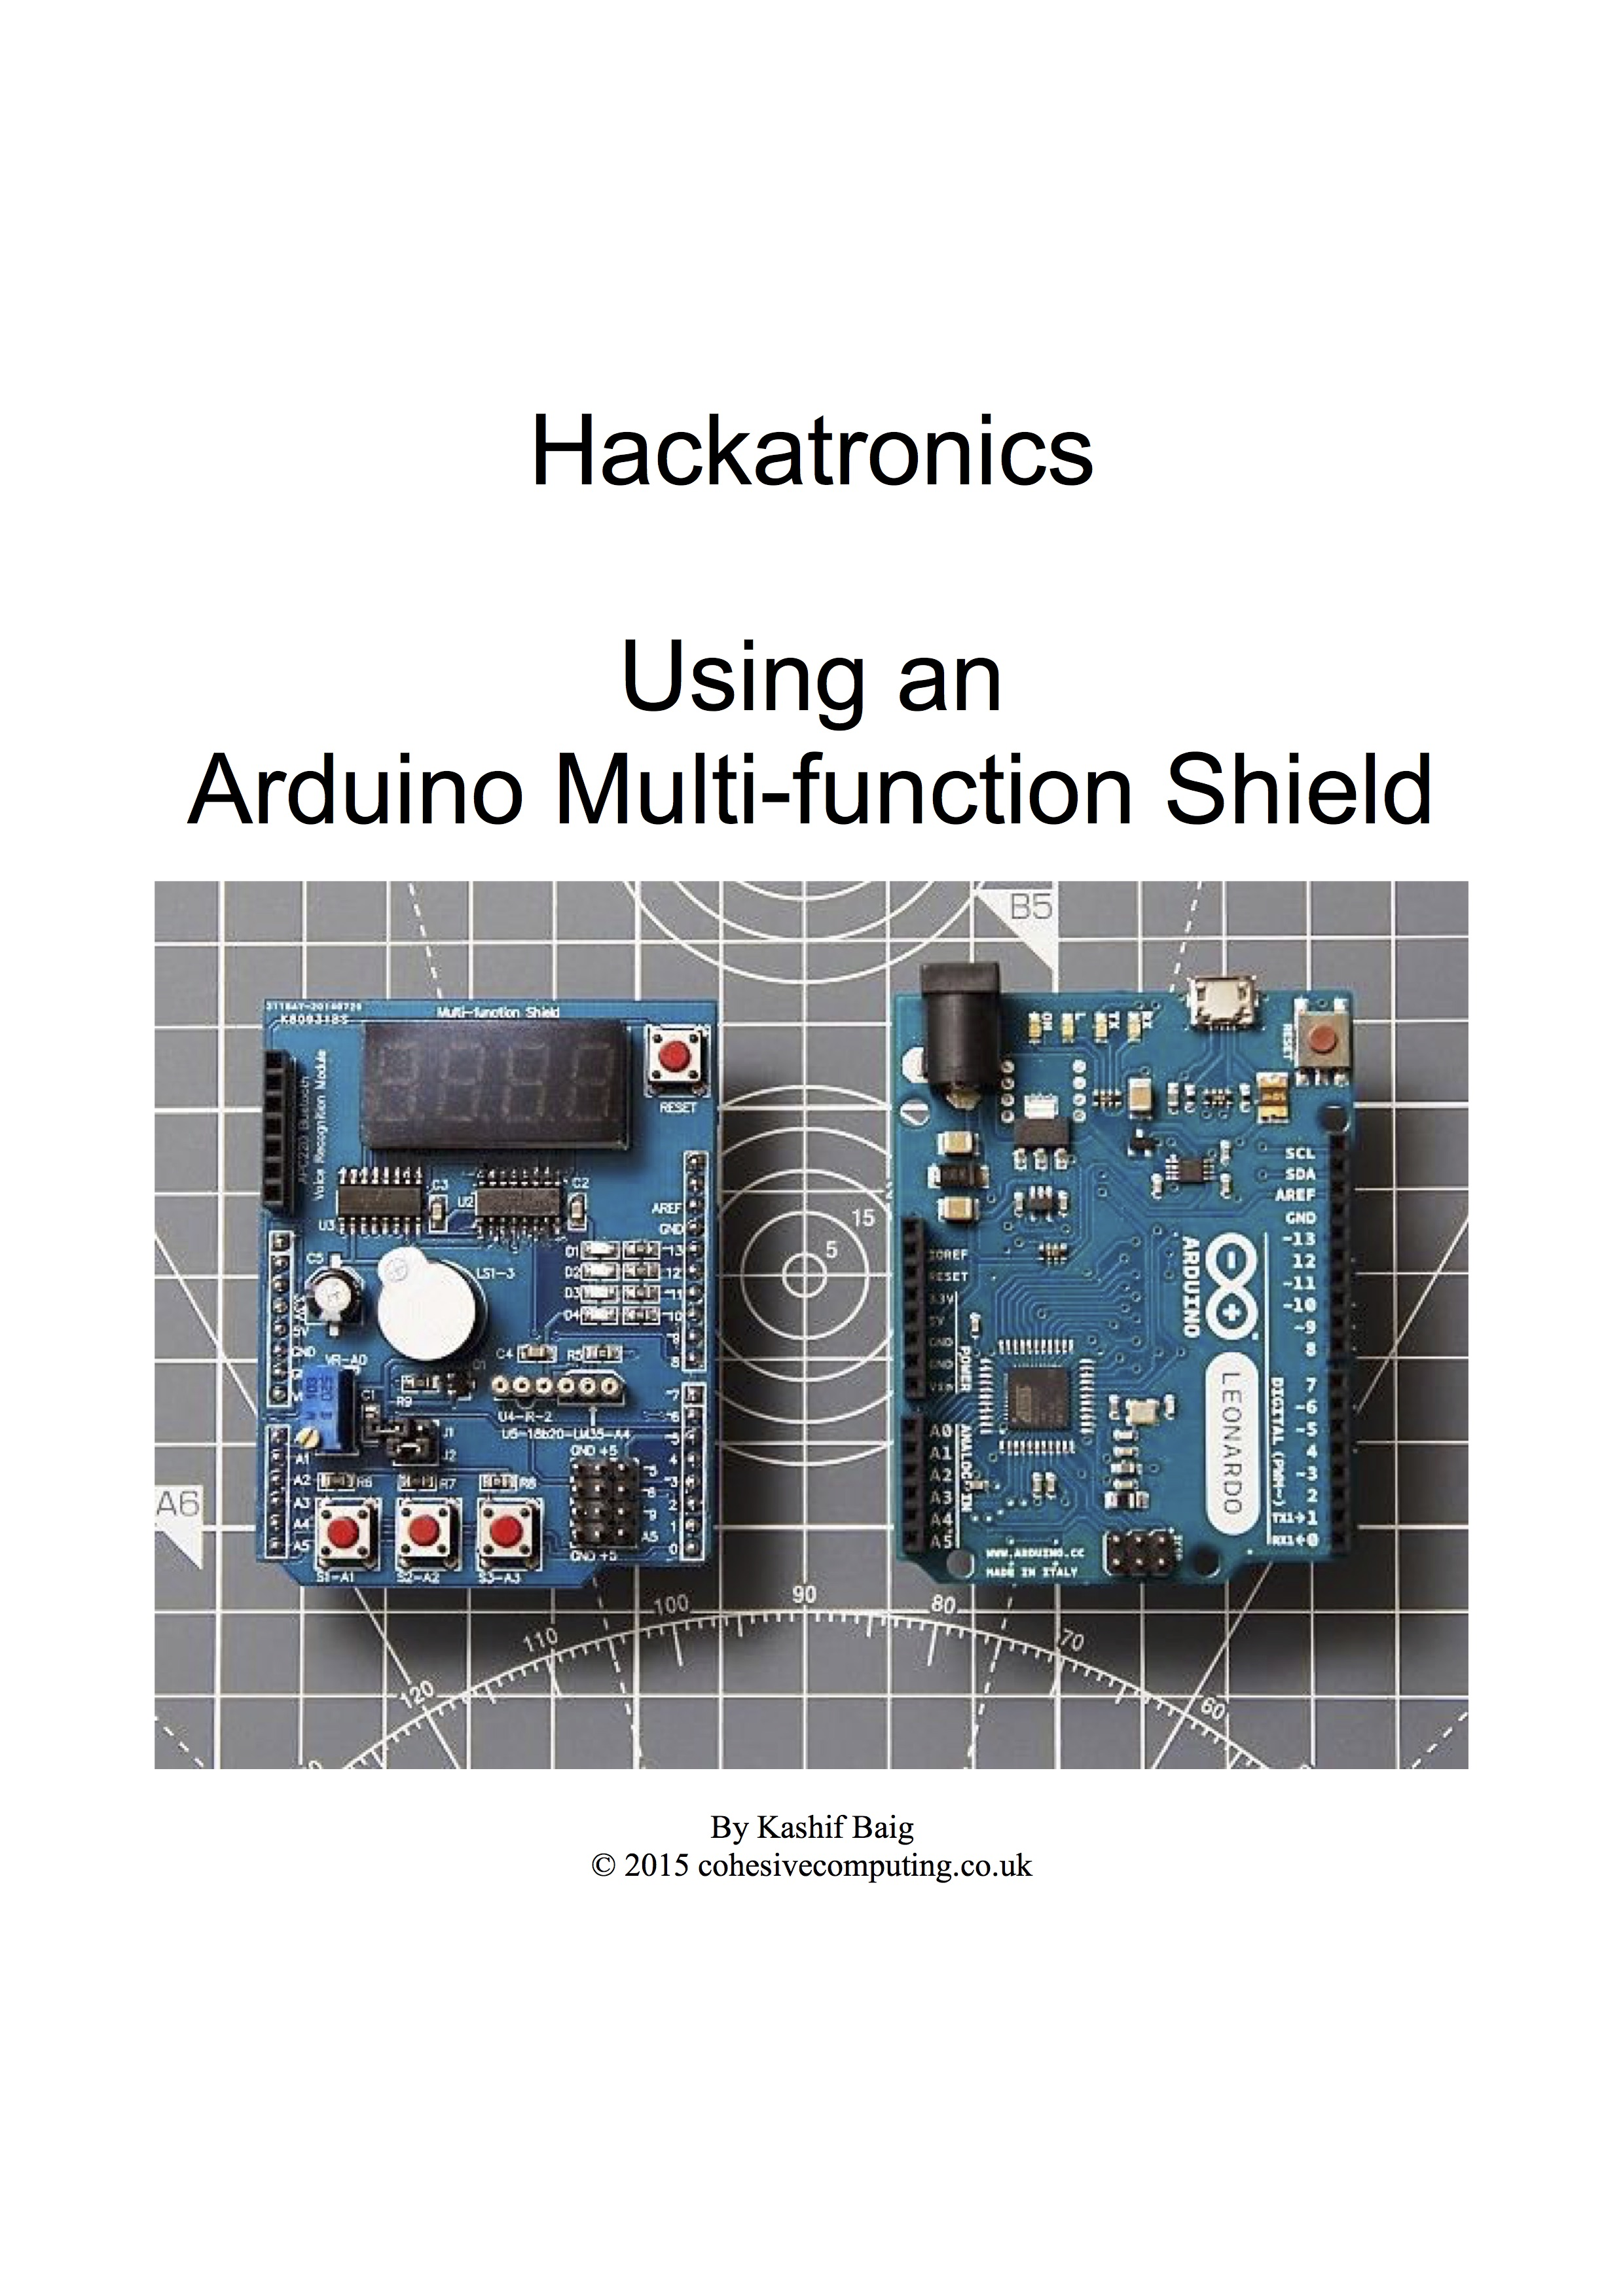 Link to Hackatronics description   of the multi-function shield with the Arduino IDE and libraries (30 page PDF, 383 KB)